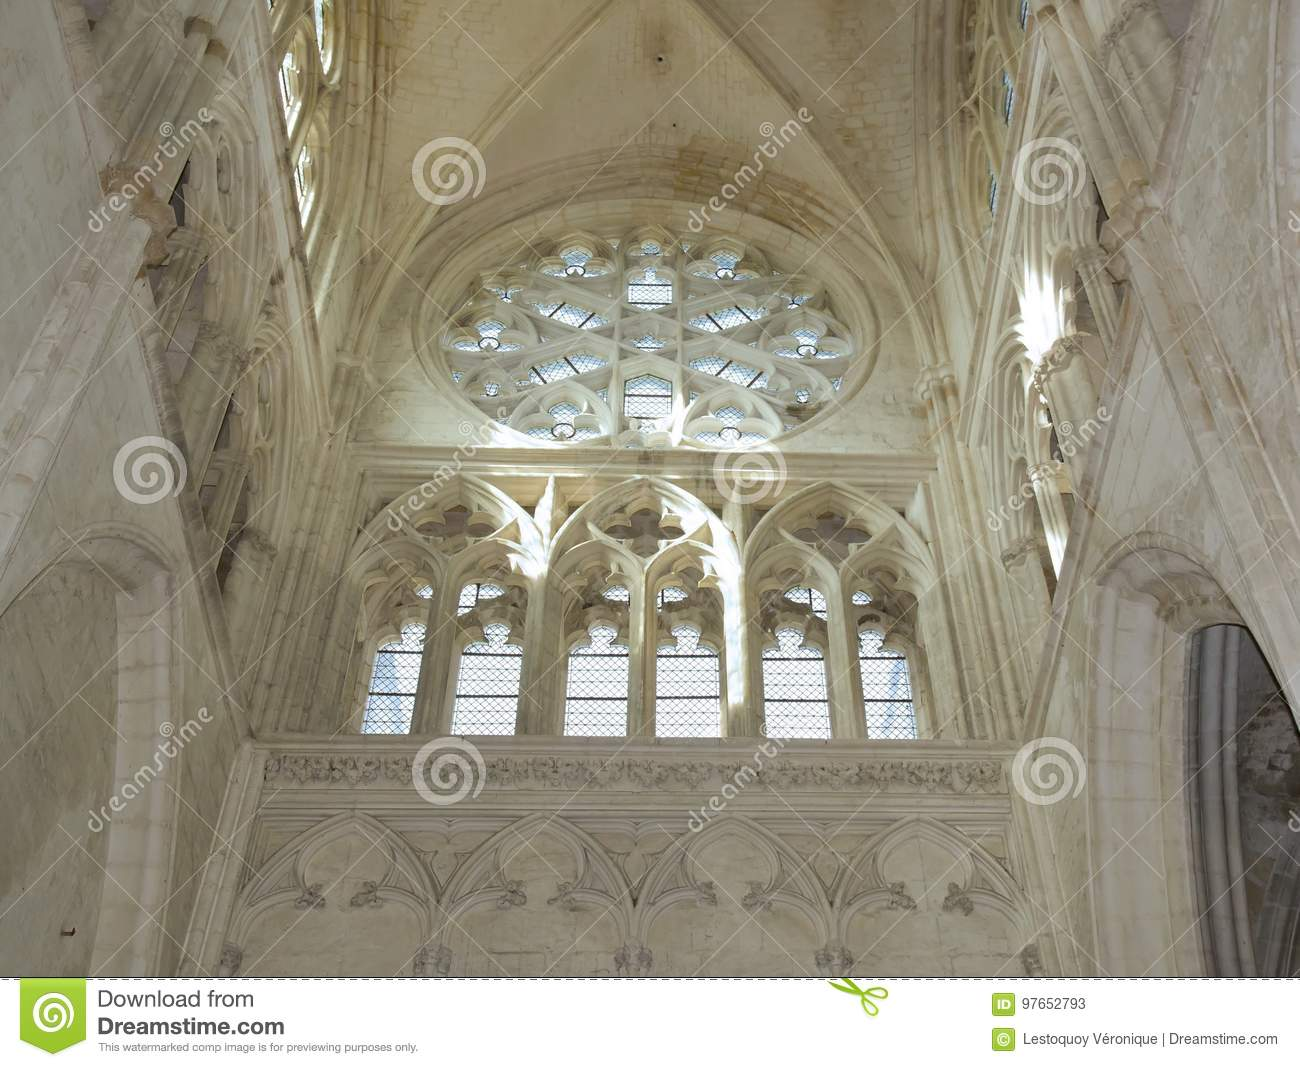 Architecte D'intérieur Auxerre Abbey Church Of St Germain In Auxerre Burgundy France Stock Image